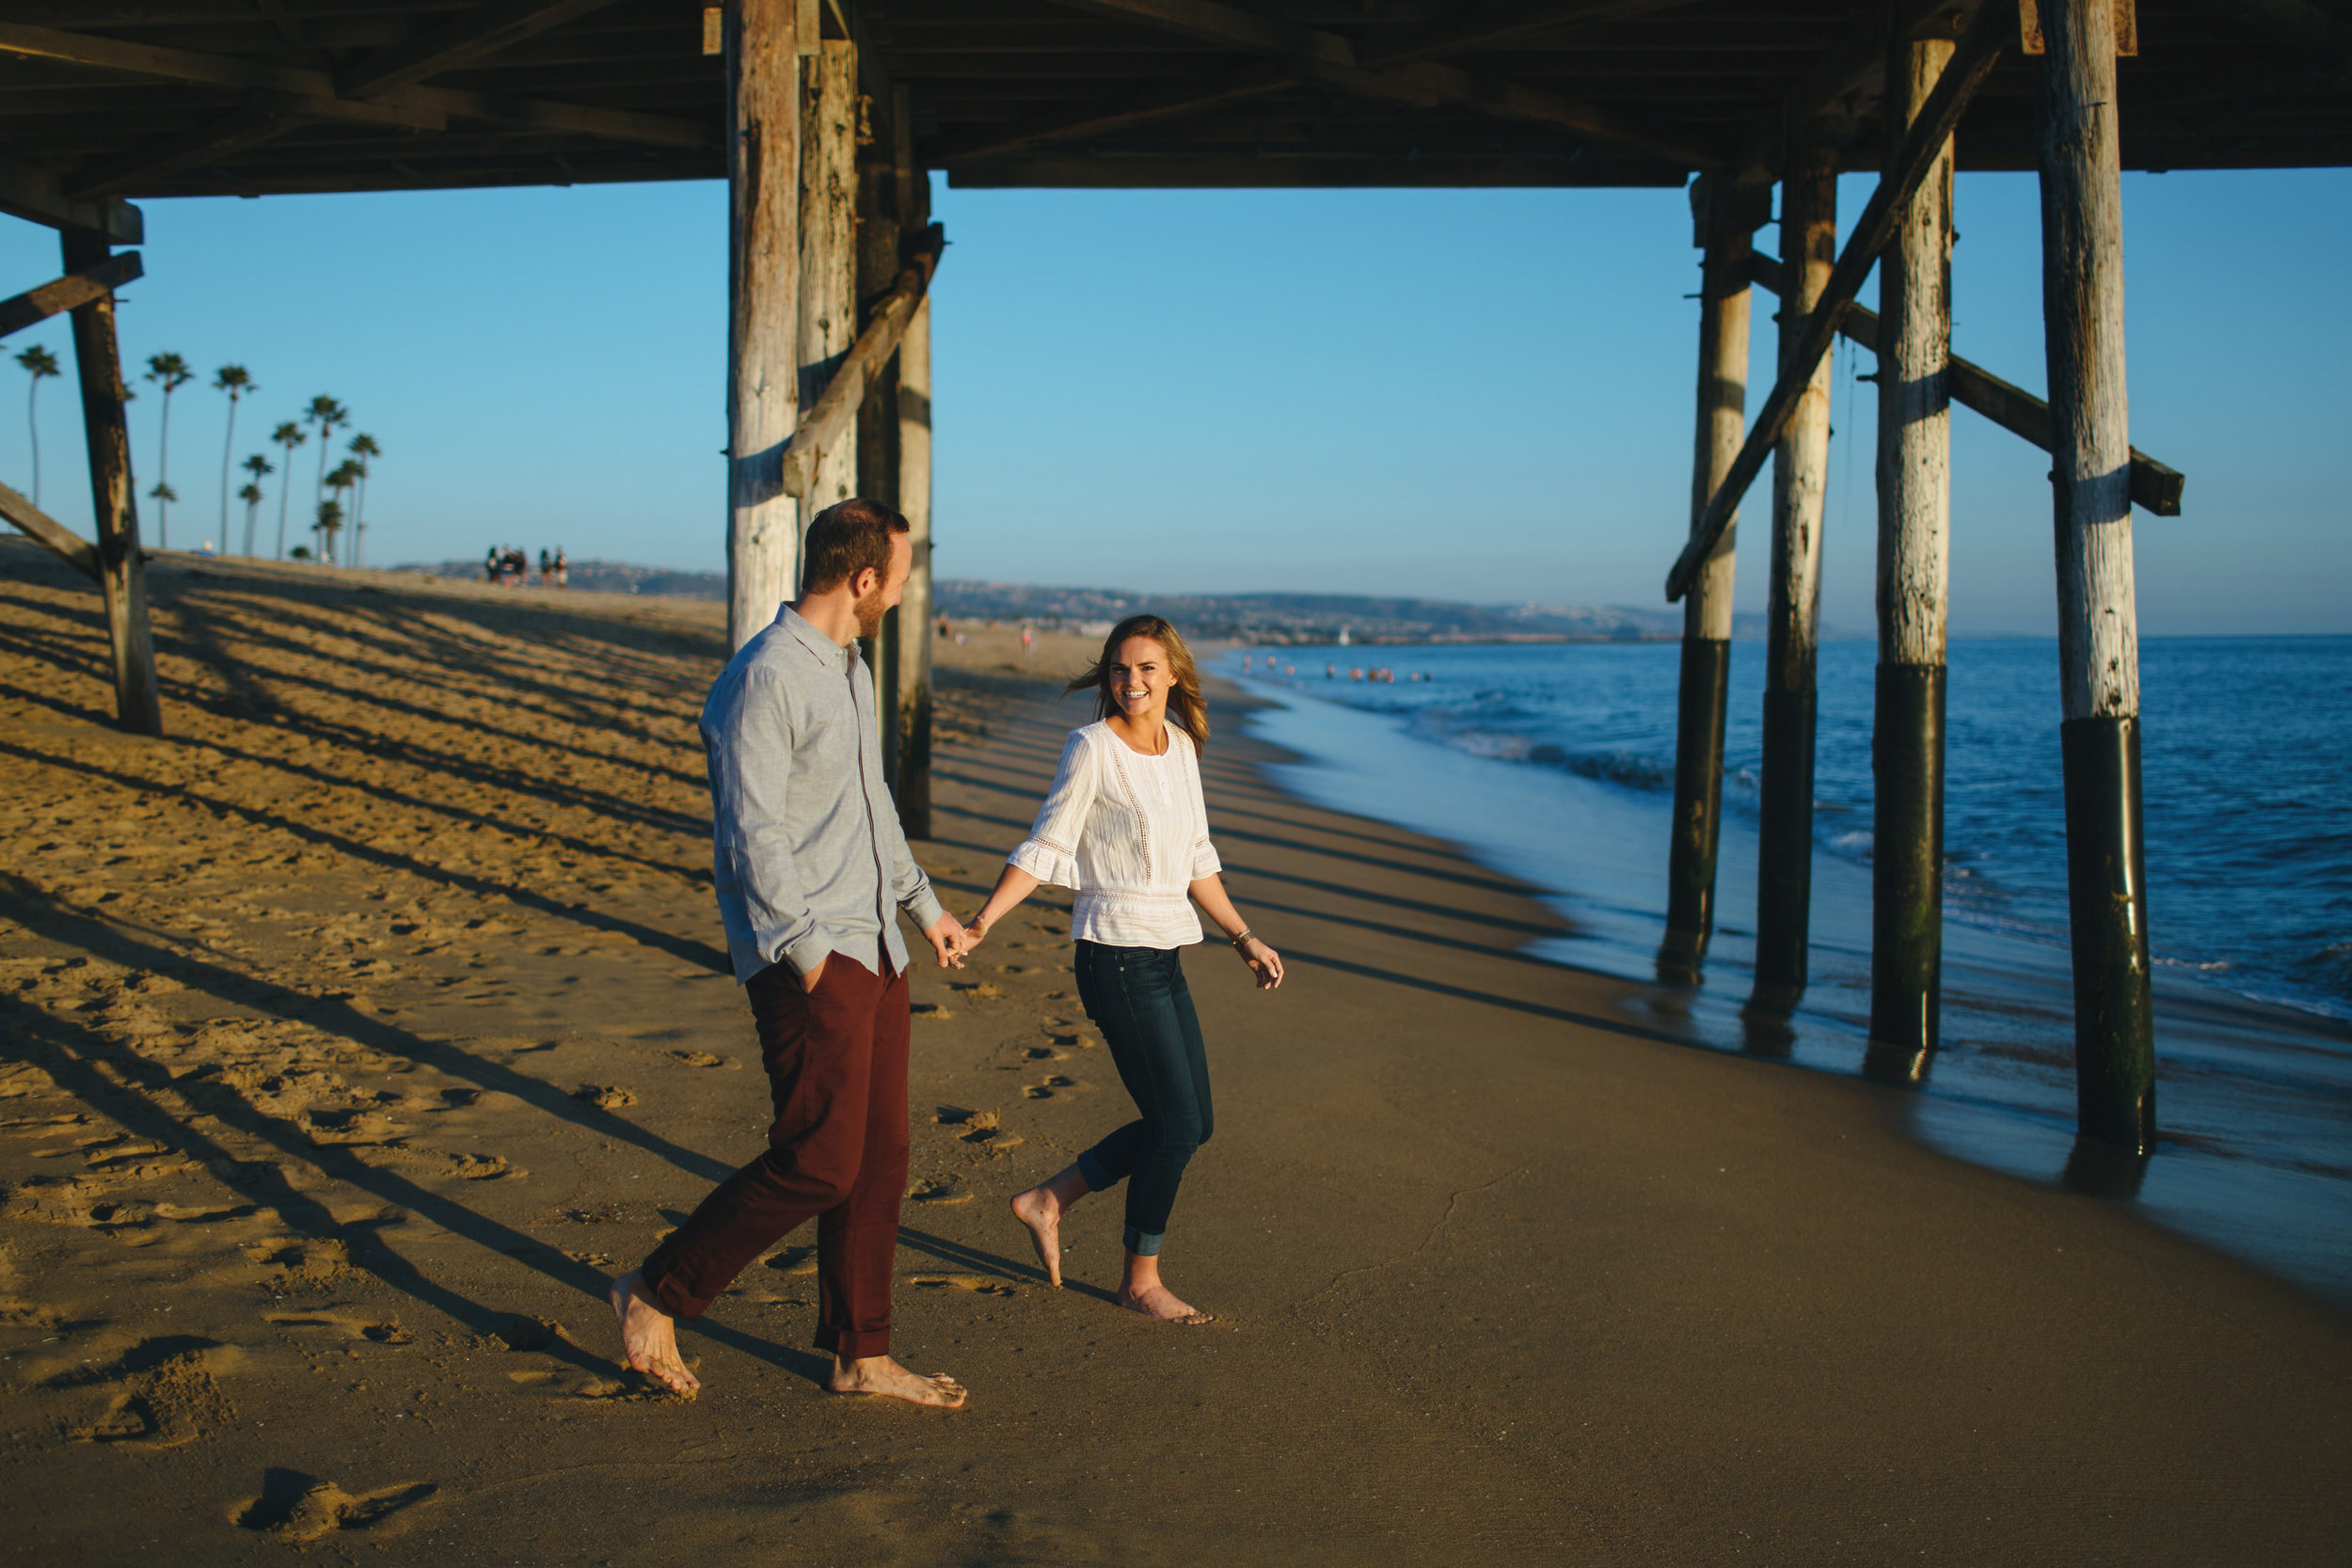 Newport-Beach-Engagement-35.jpg